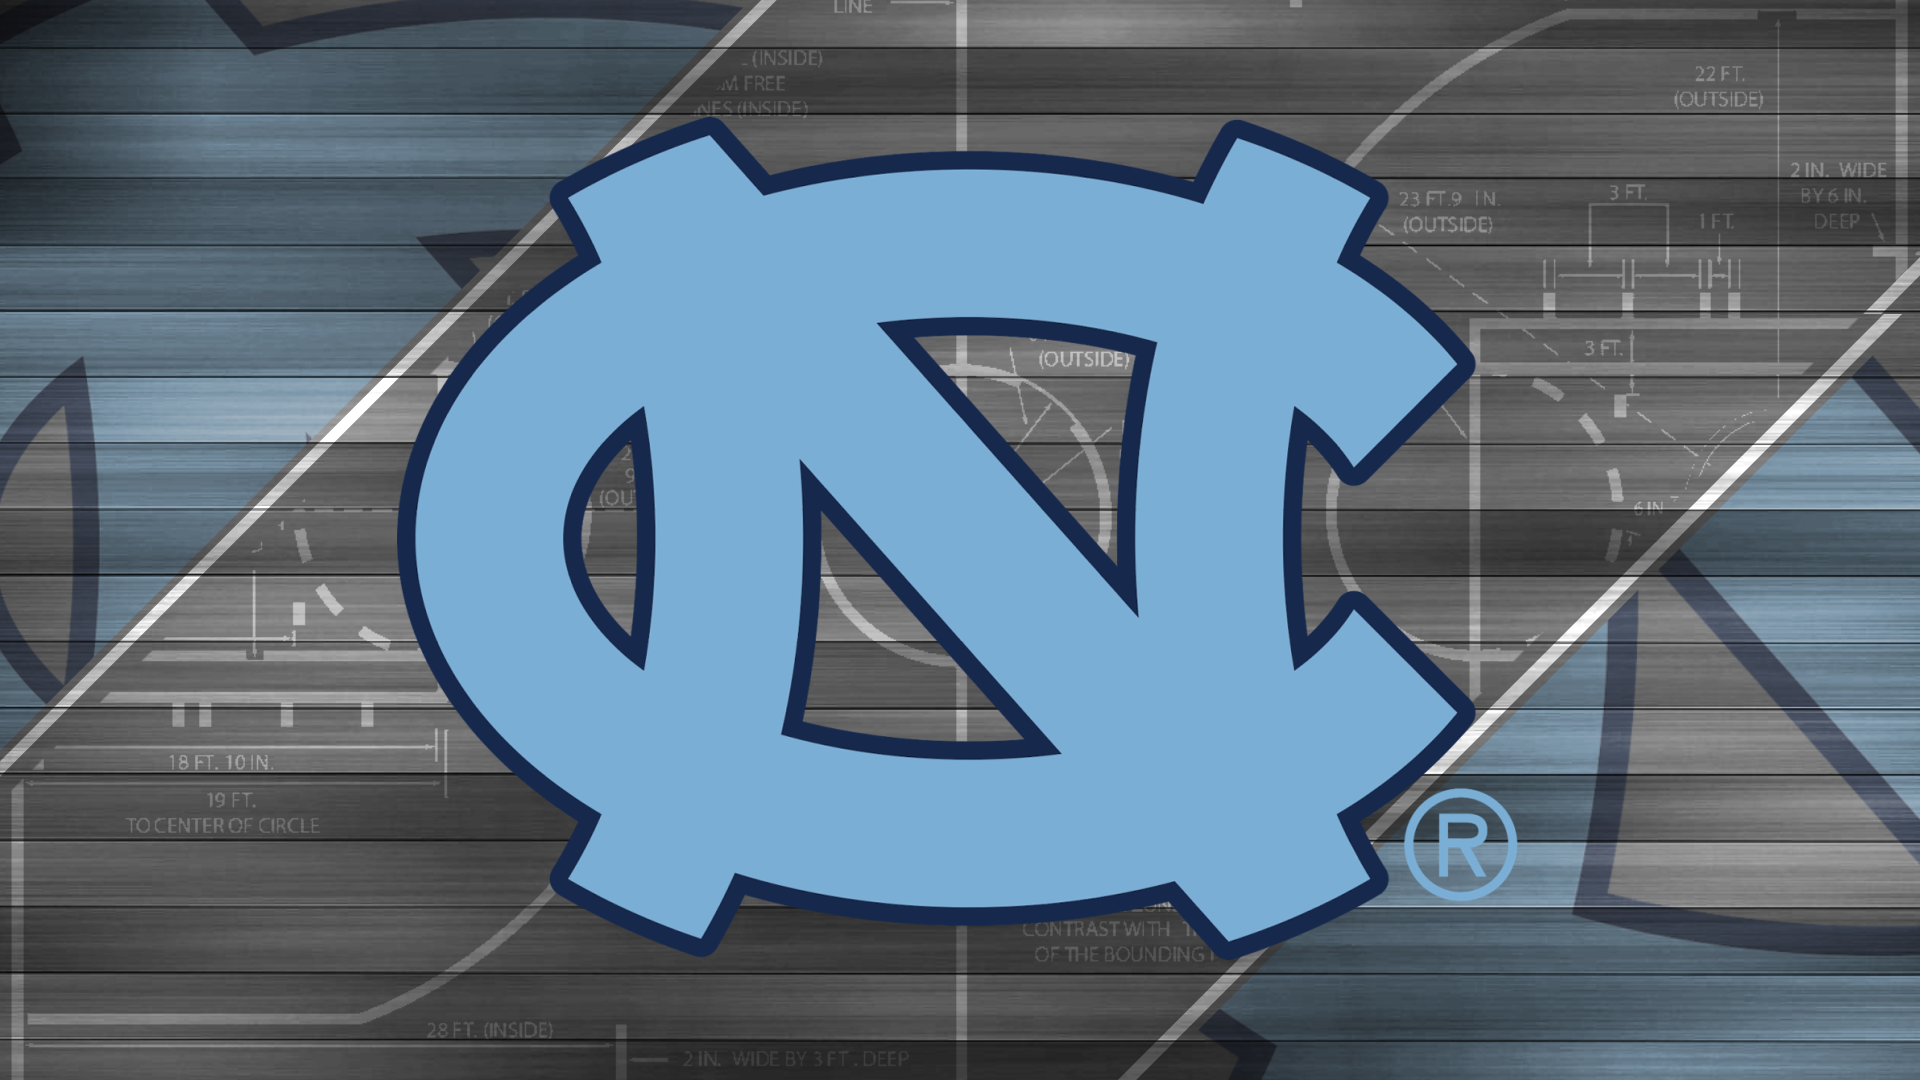 Awesome UNC Wallpaper For Desktop